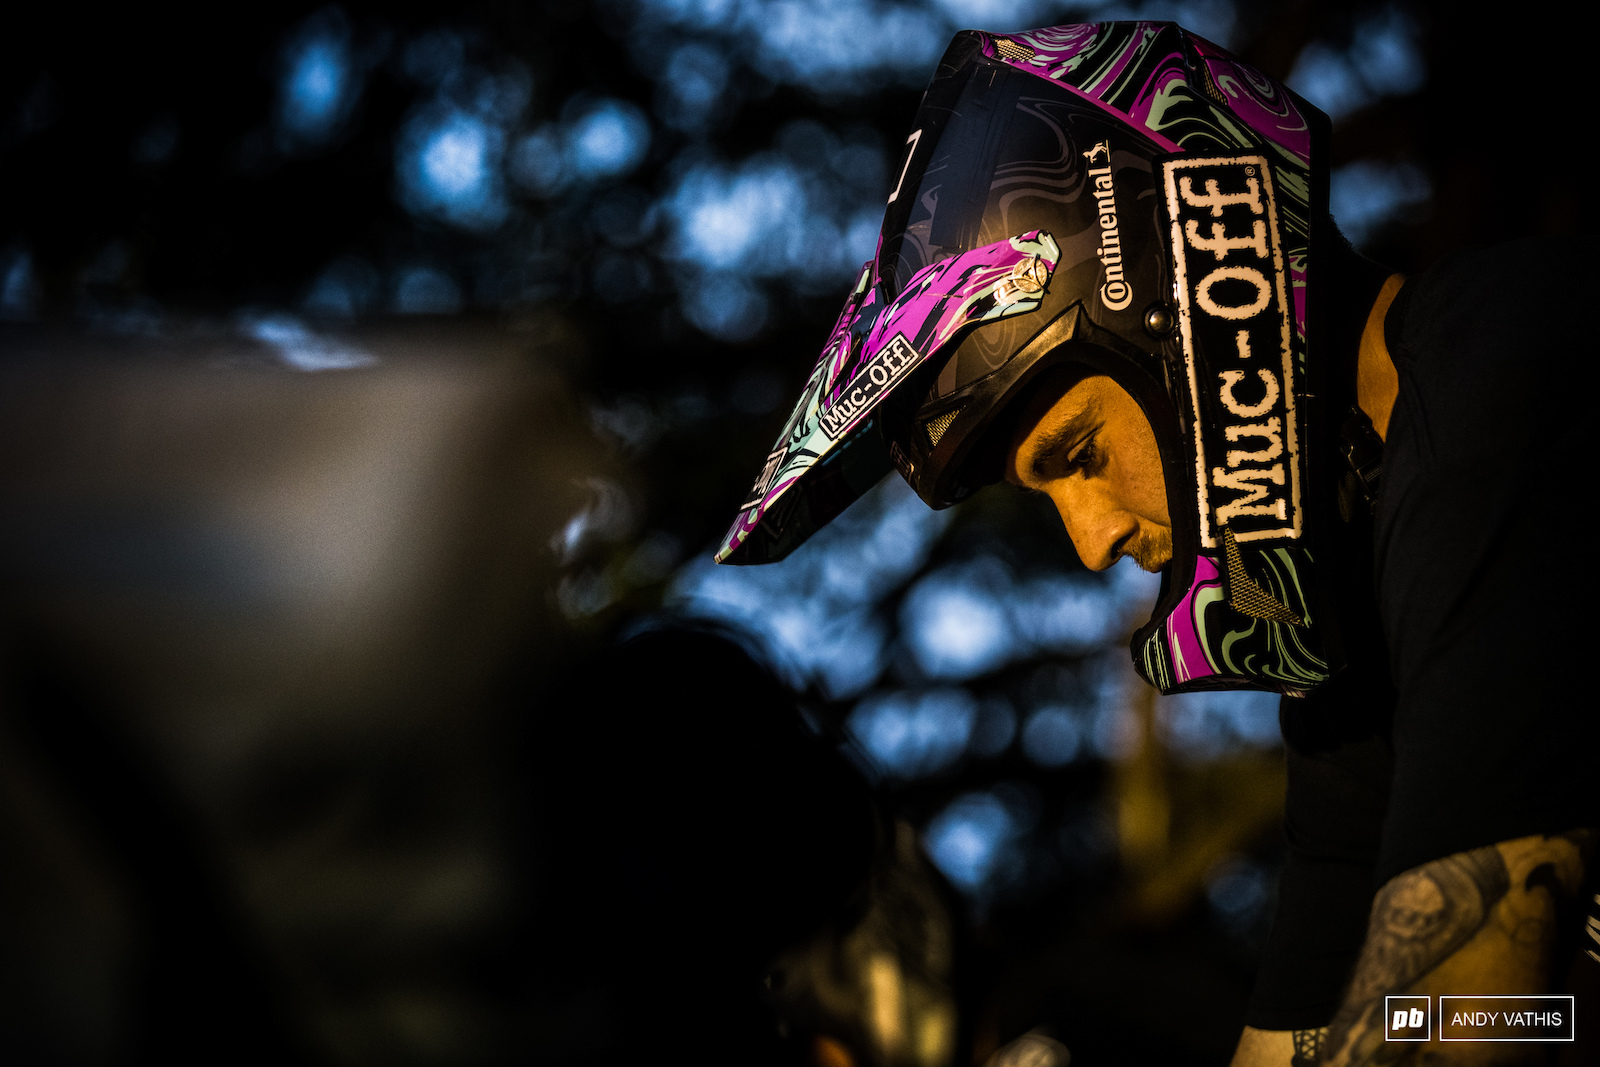 Tomas Lemoine has got something to prove since his misfortune at Speed Style.